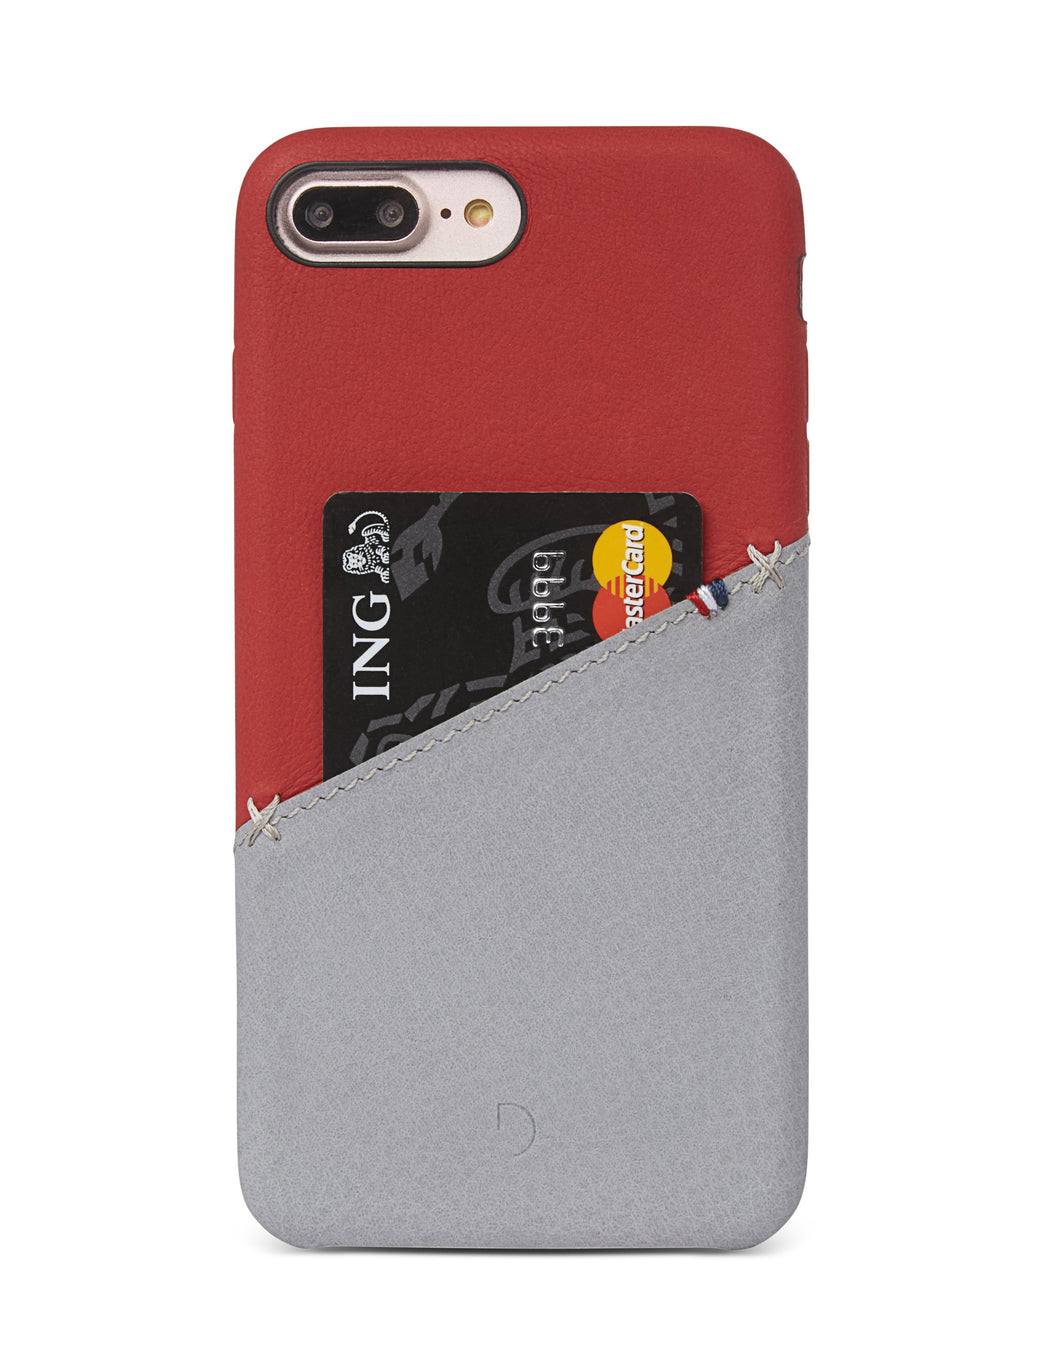 Back Cover Card Case Red/Grey - iPhone 6s / 6 Plus